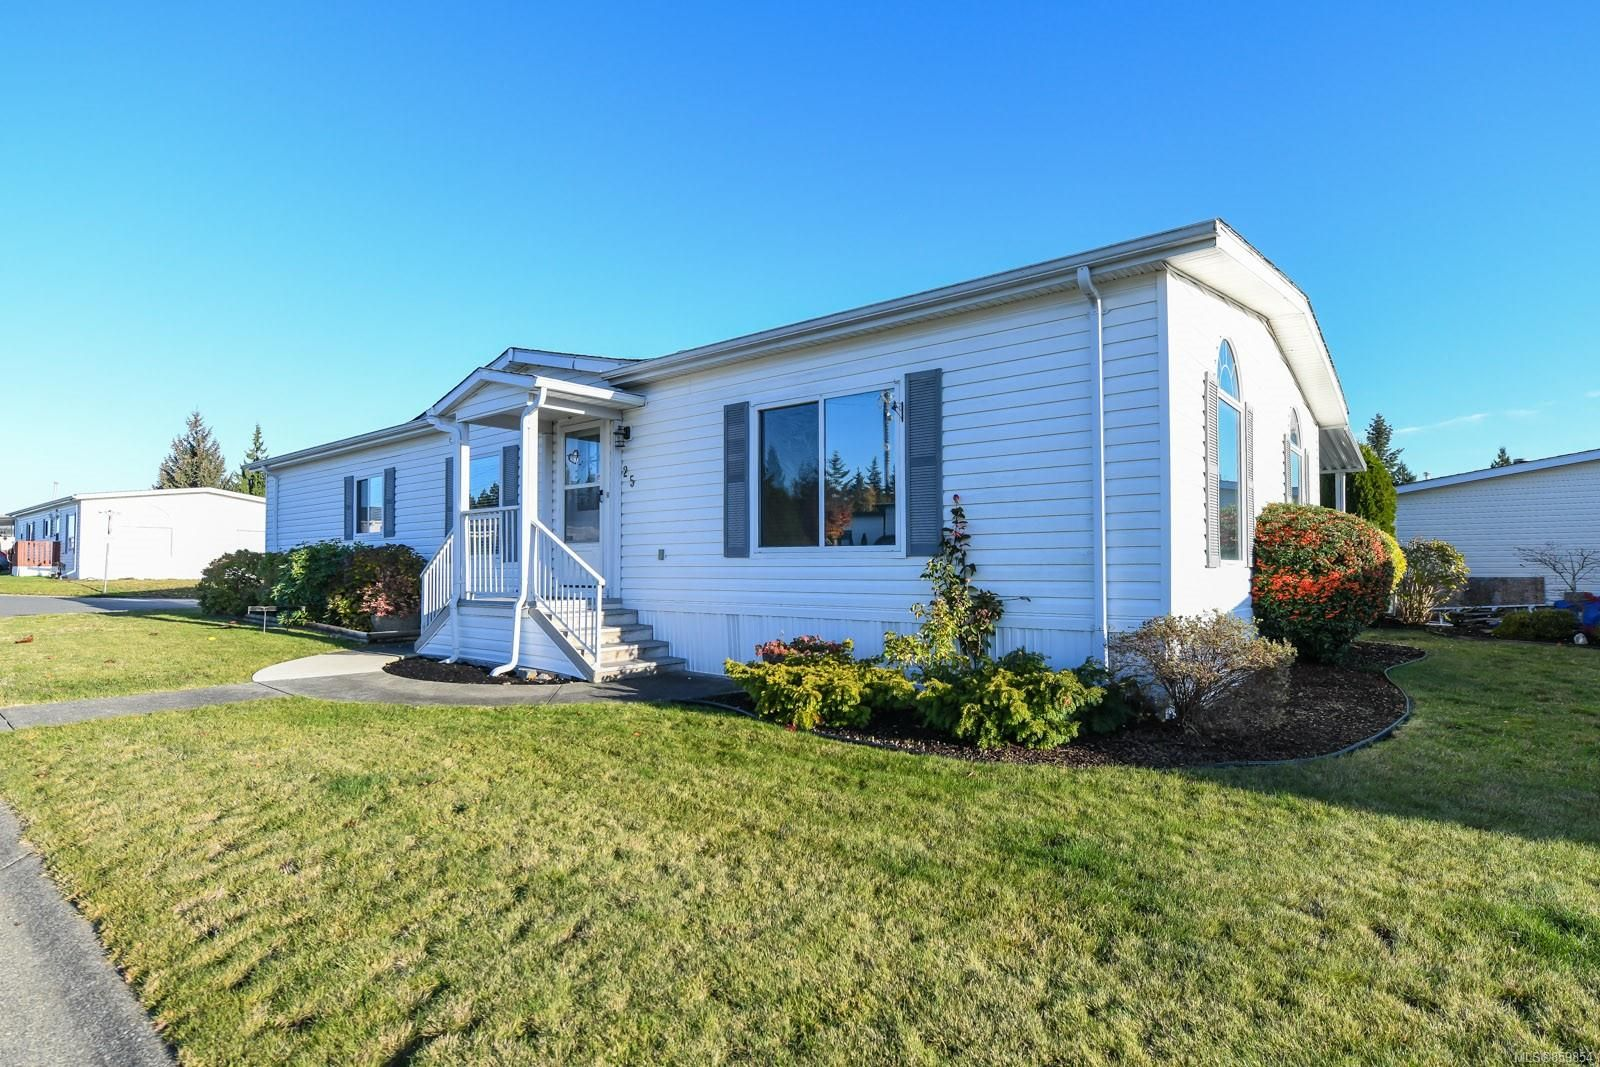 Main Photo: 25 4714 Muir Rd in : CV Courtenay East Manufactured Home for sale (Comox Valley)  : MLS®# 859854